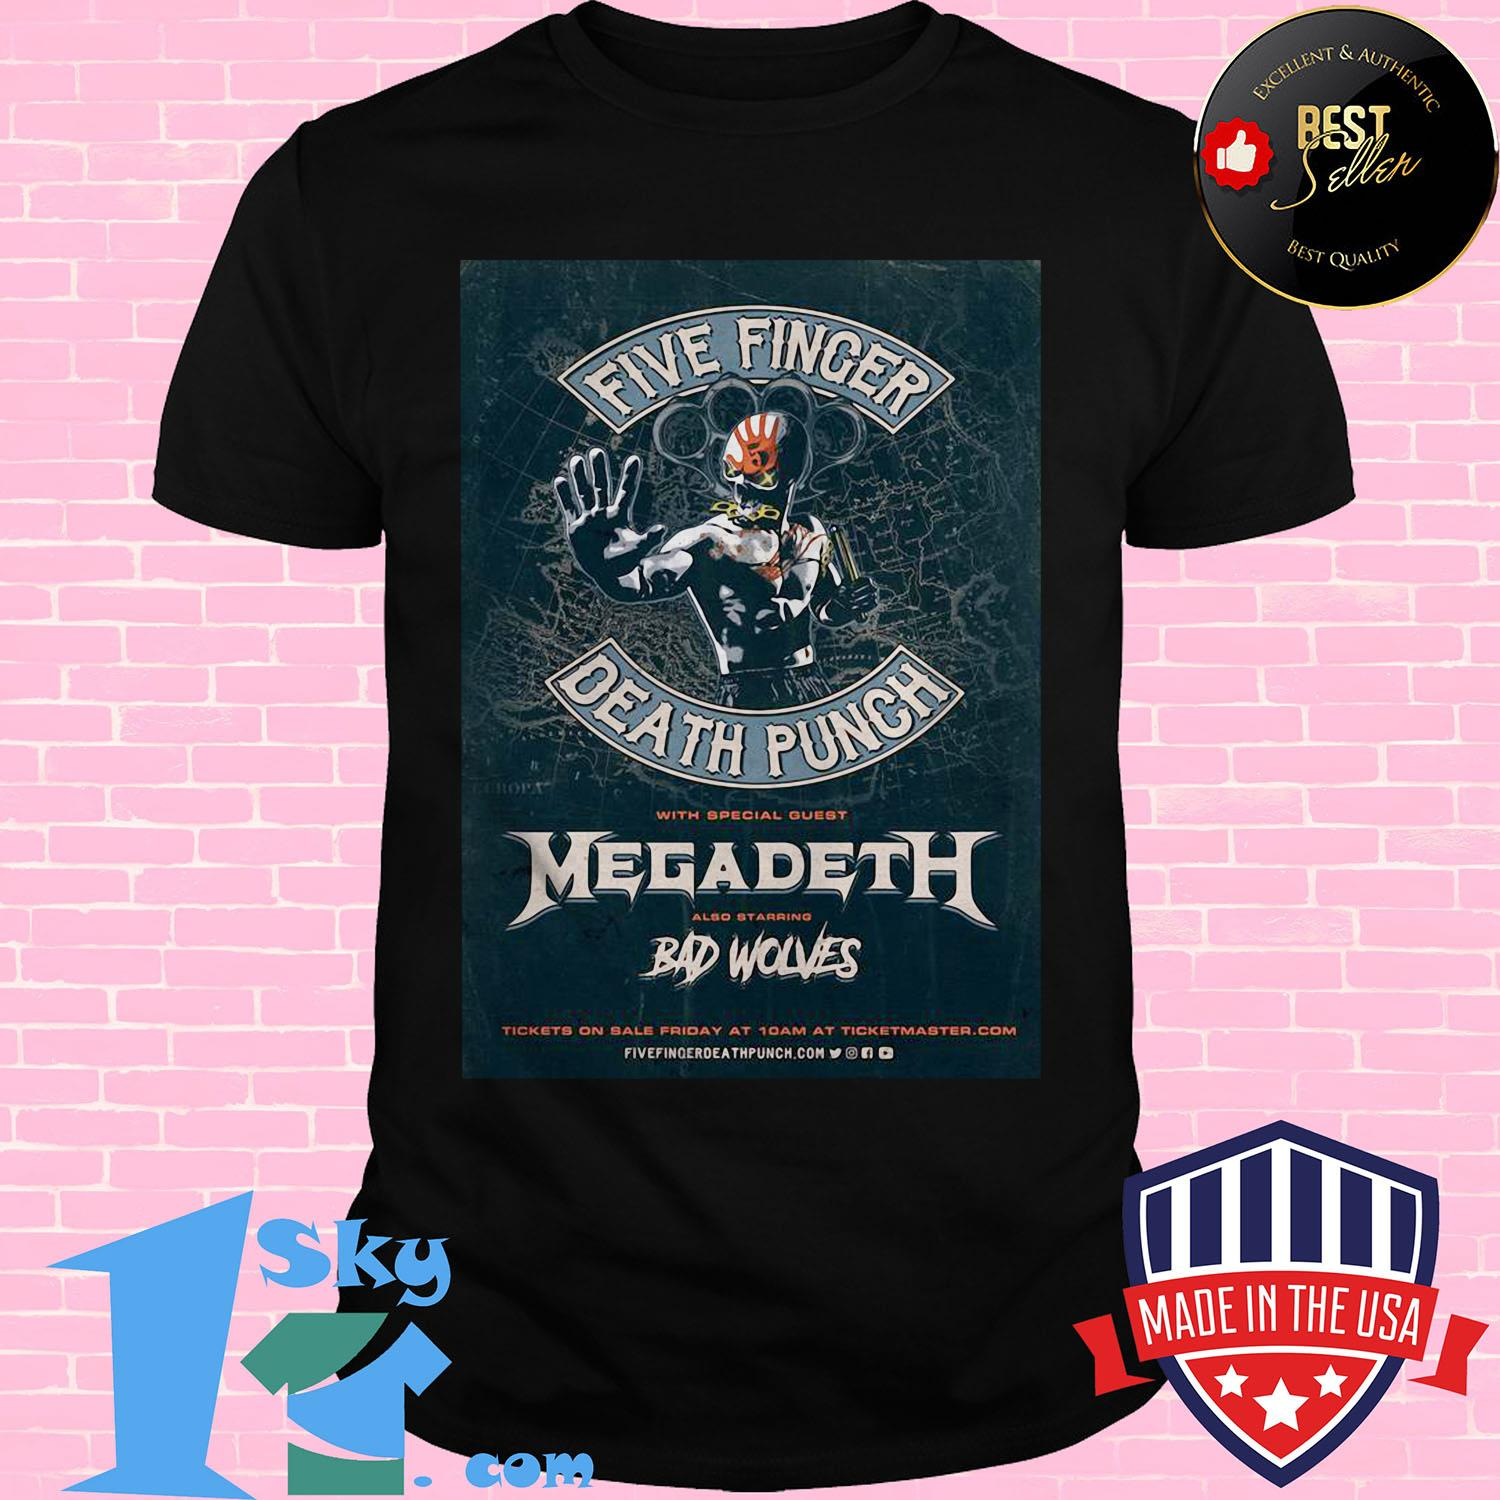 five finger death punch with special guest megadeth also starring bad wolves 2020 european ladies tee - Five Finger Death Punch With Special Guest Megadeth Also Starring Bad Wolves 2020 European shirt